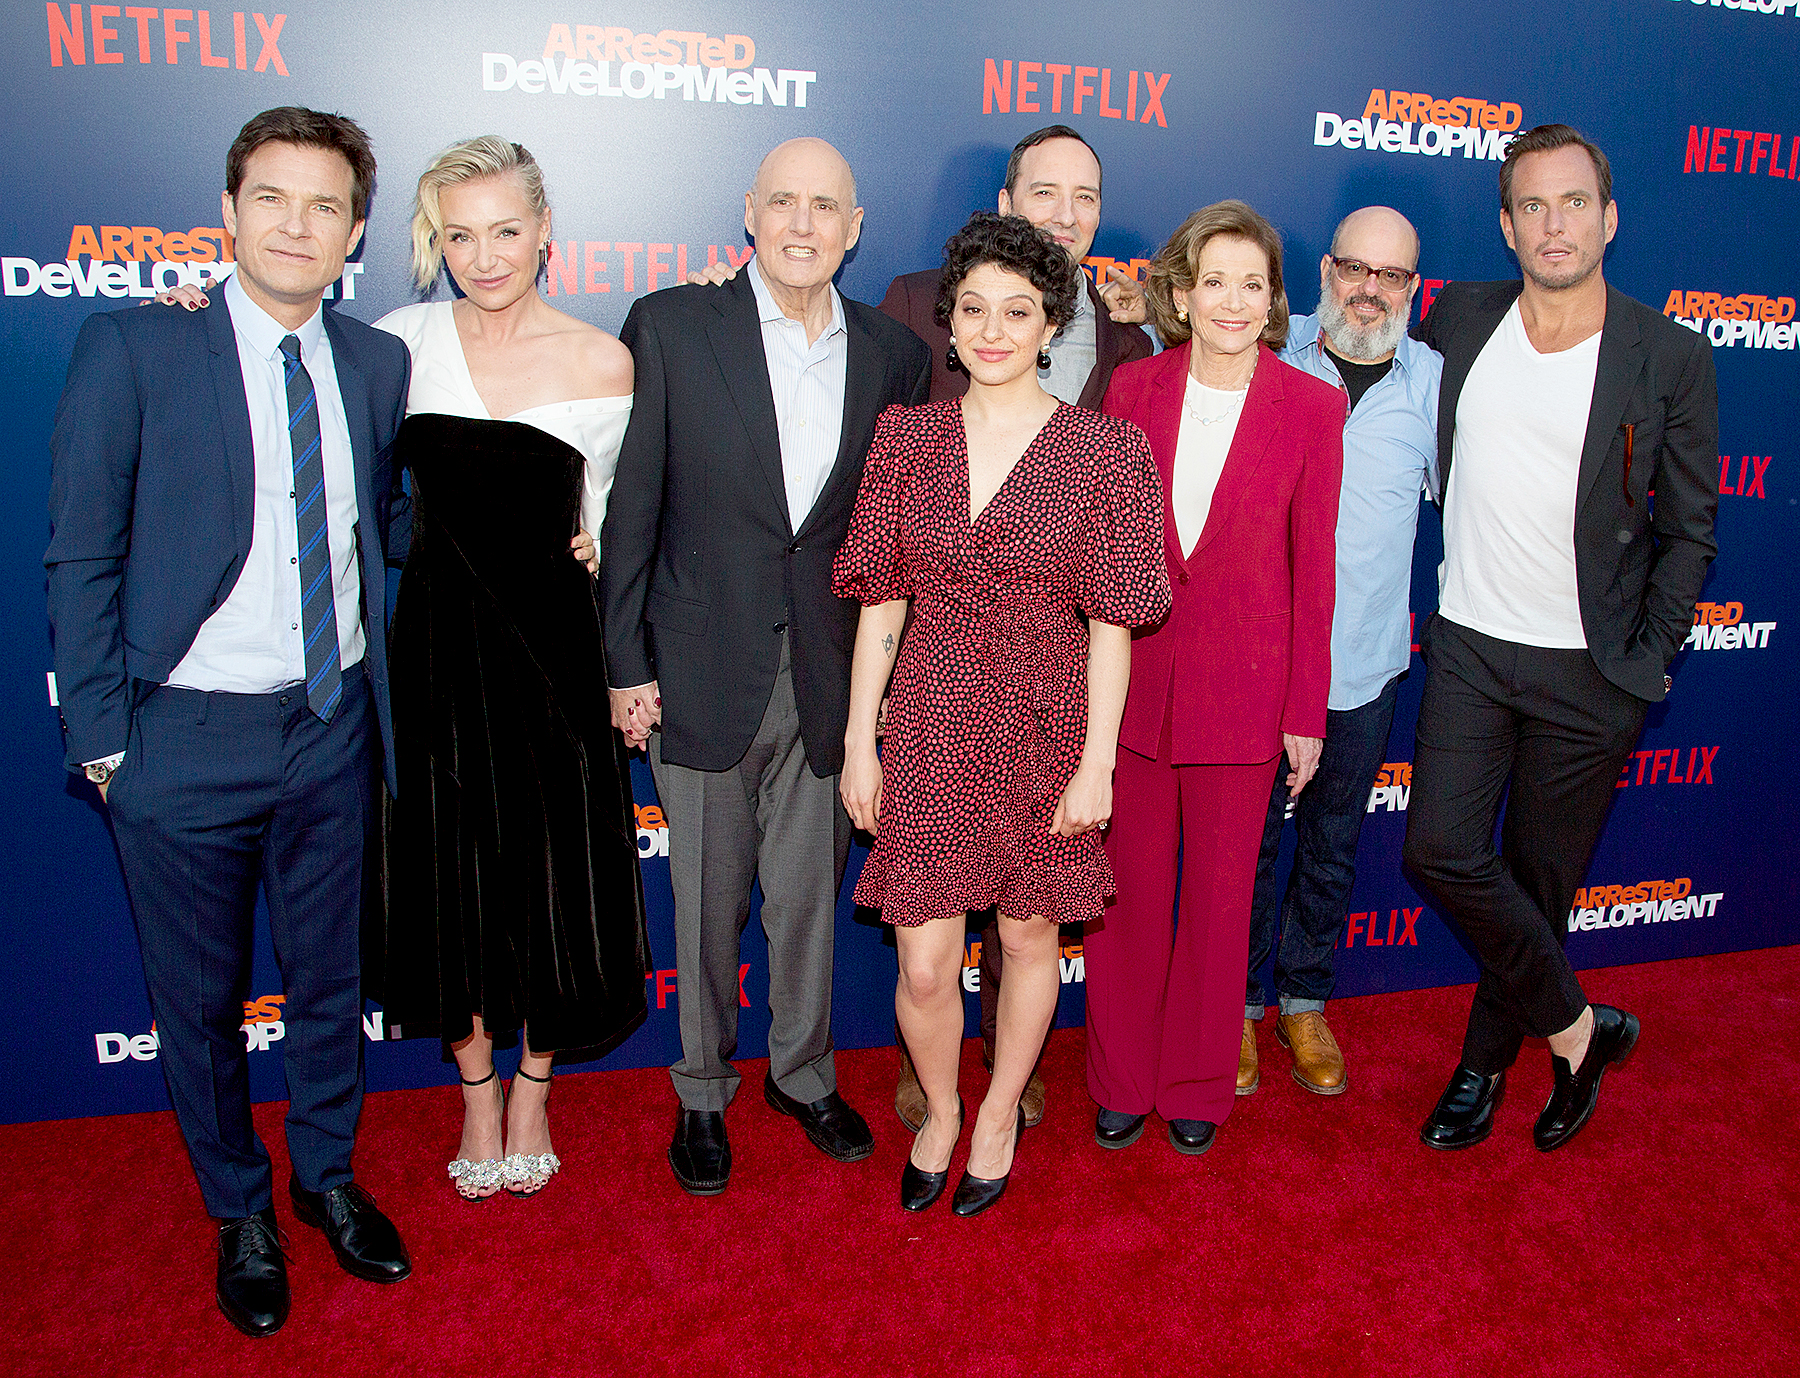 'Arrested Development' co-stars apologize to Jessica Walter